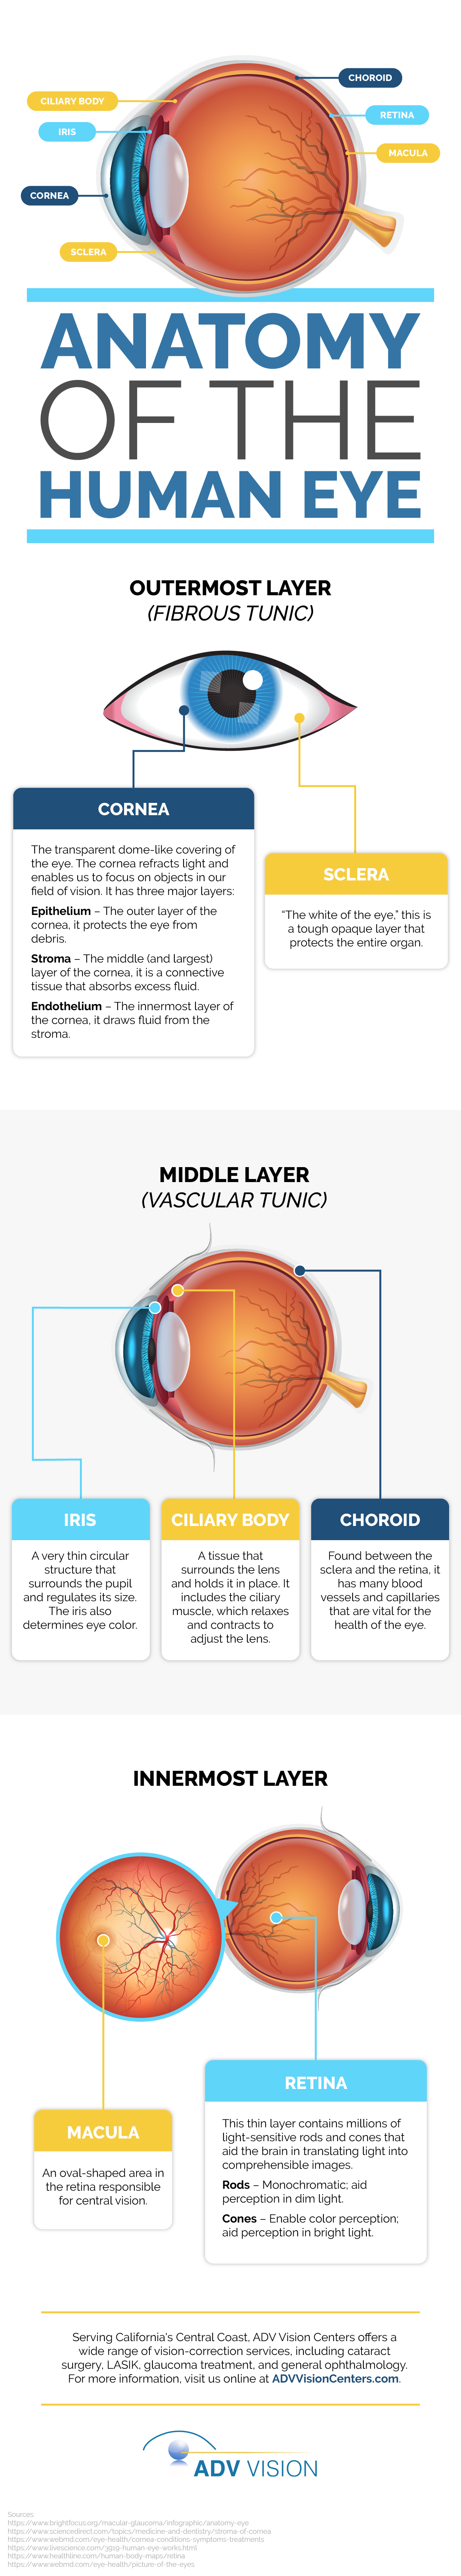 Anatomy of the Human Eye Infographic